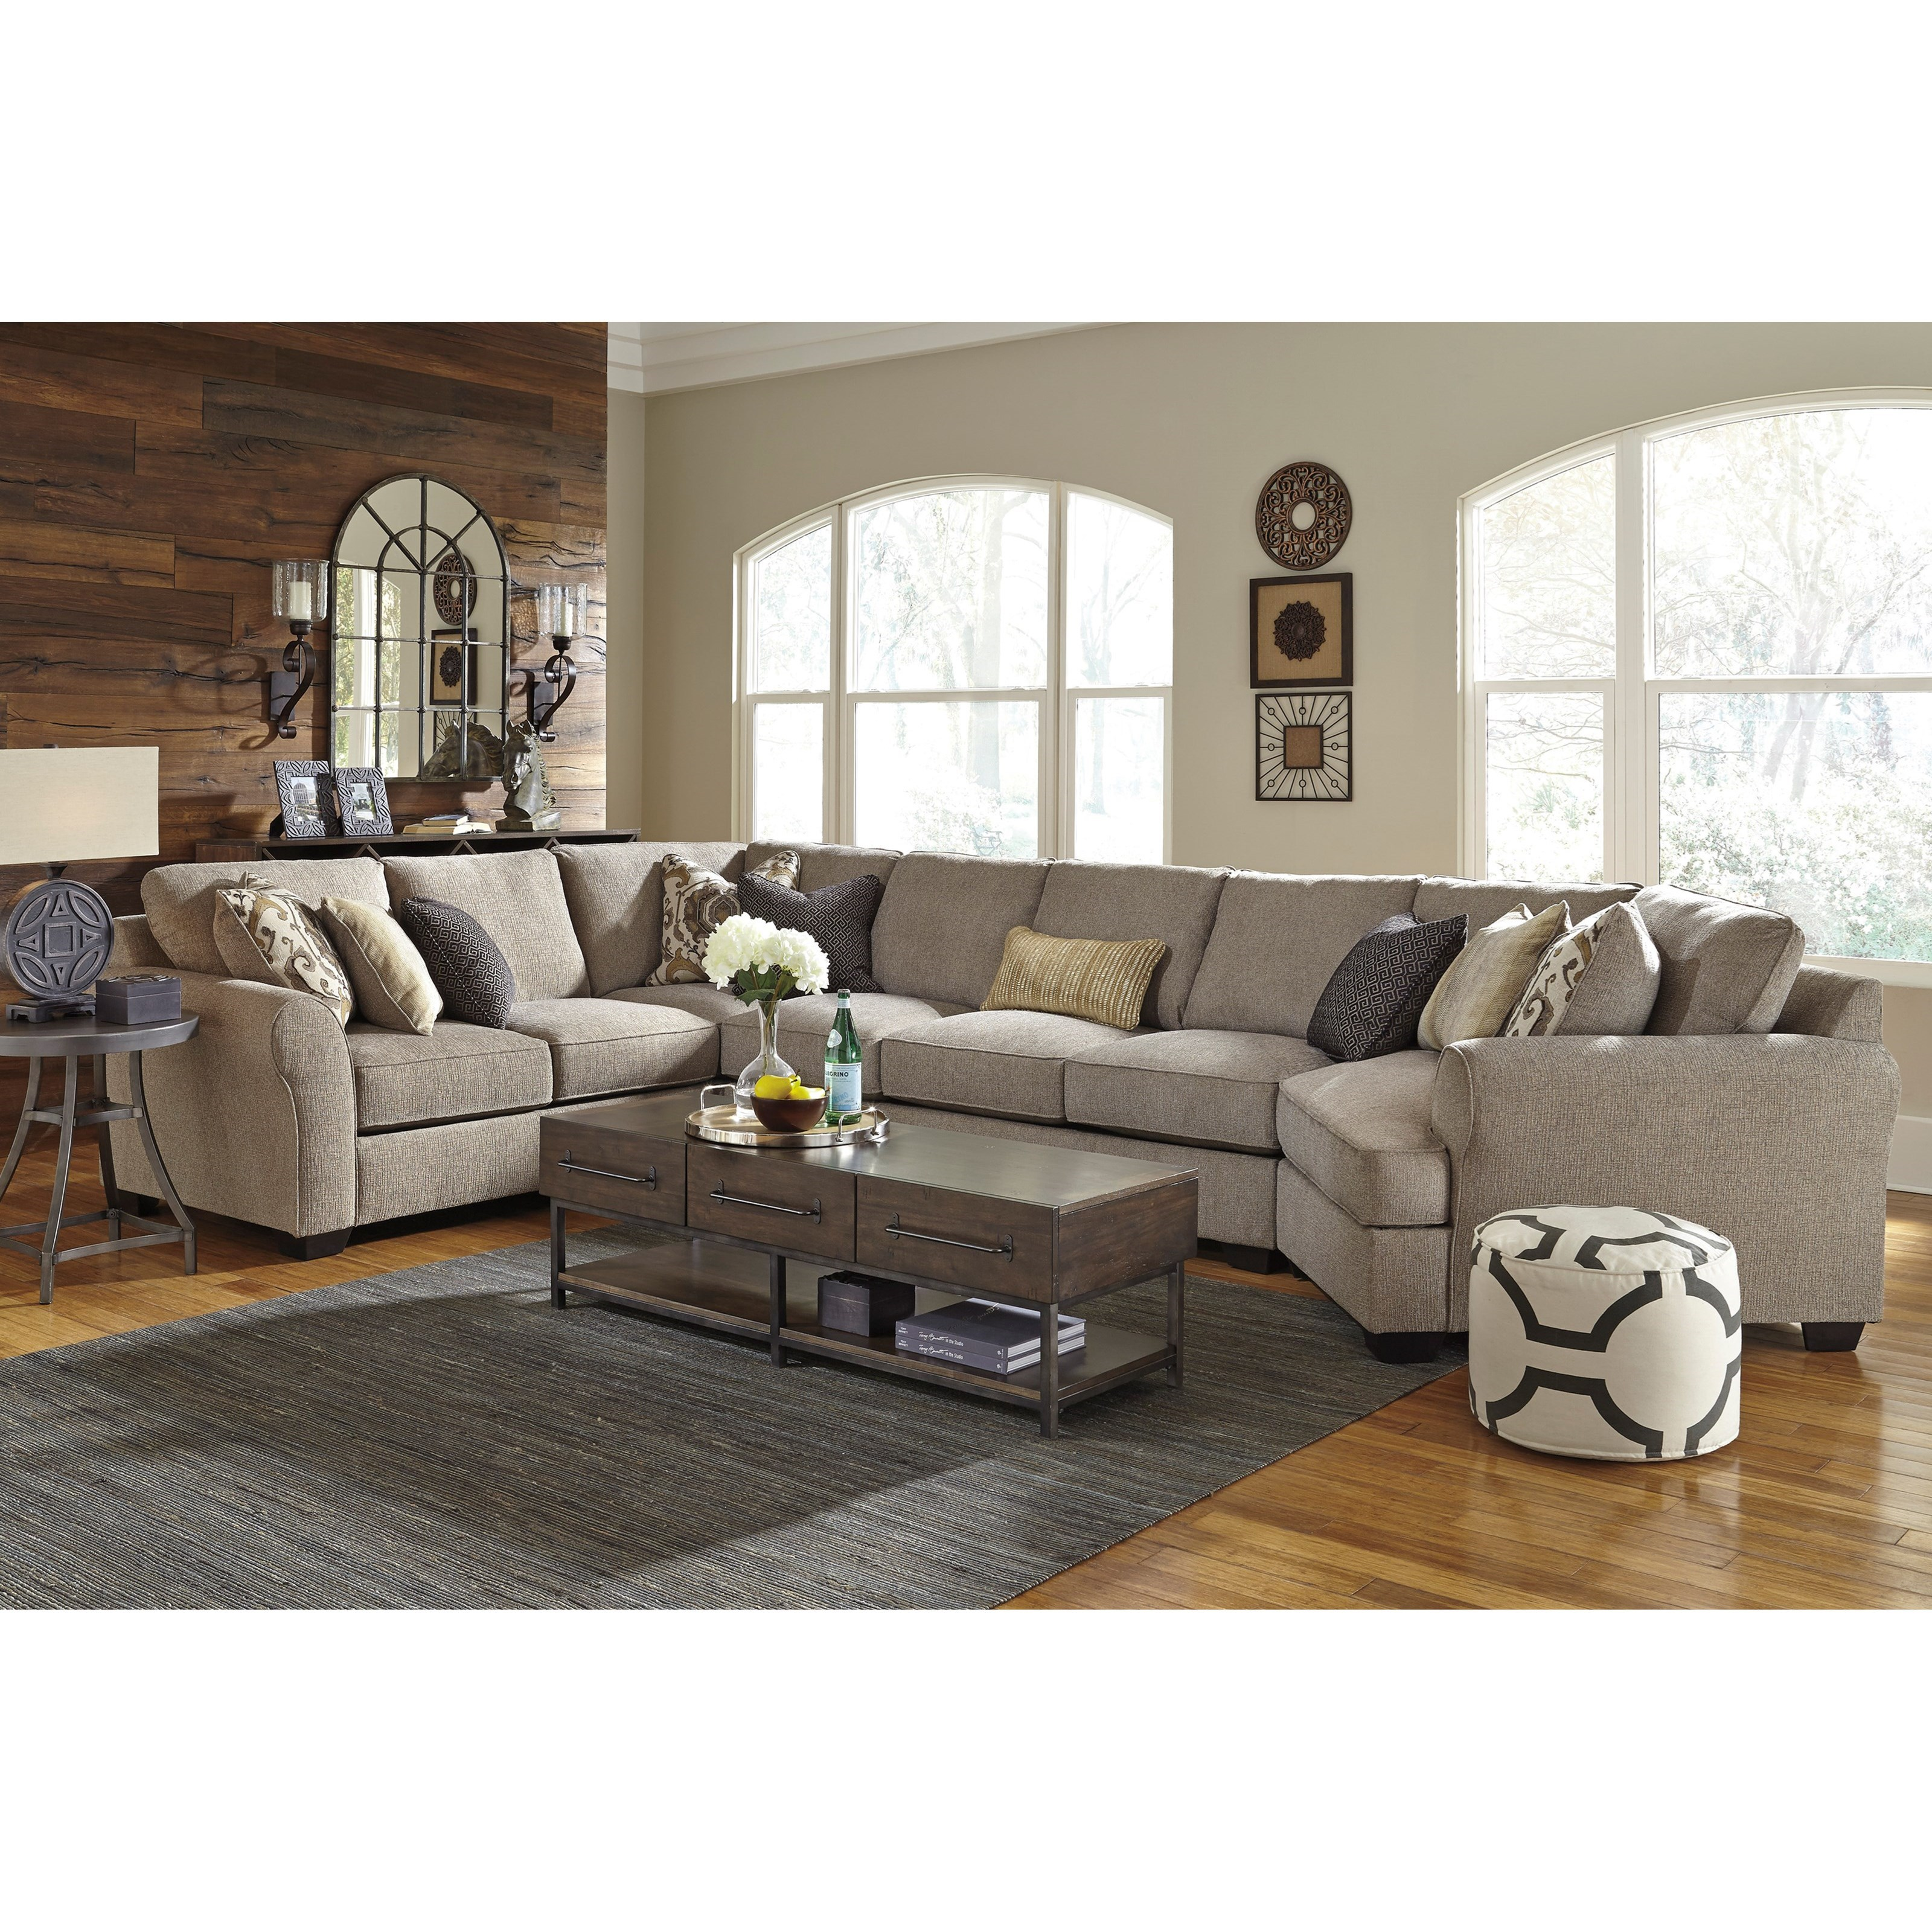 Benchcraft furniture website 100 sofa with cuddler city for Affordable modern furniture new york city